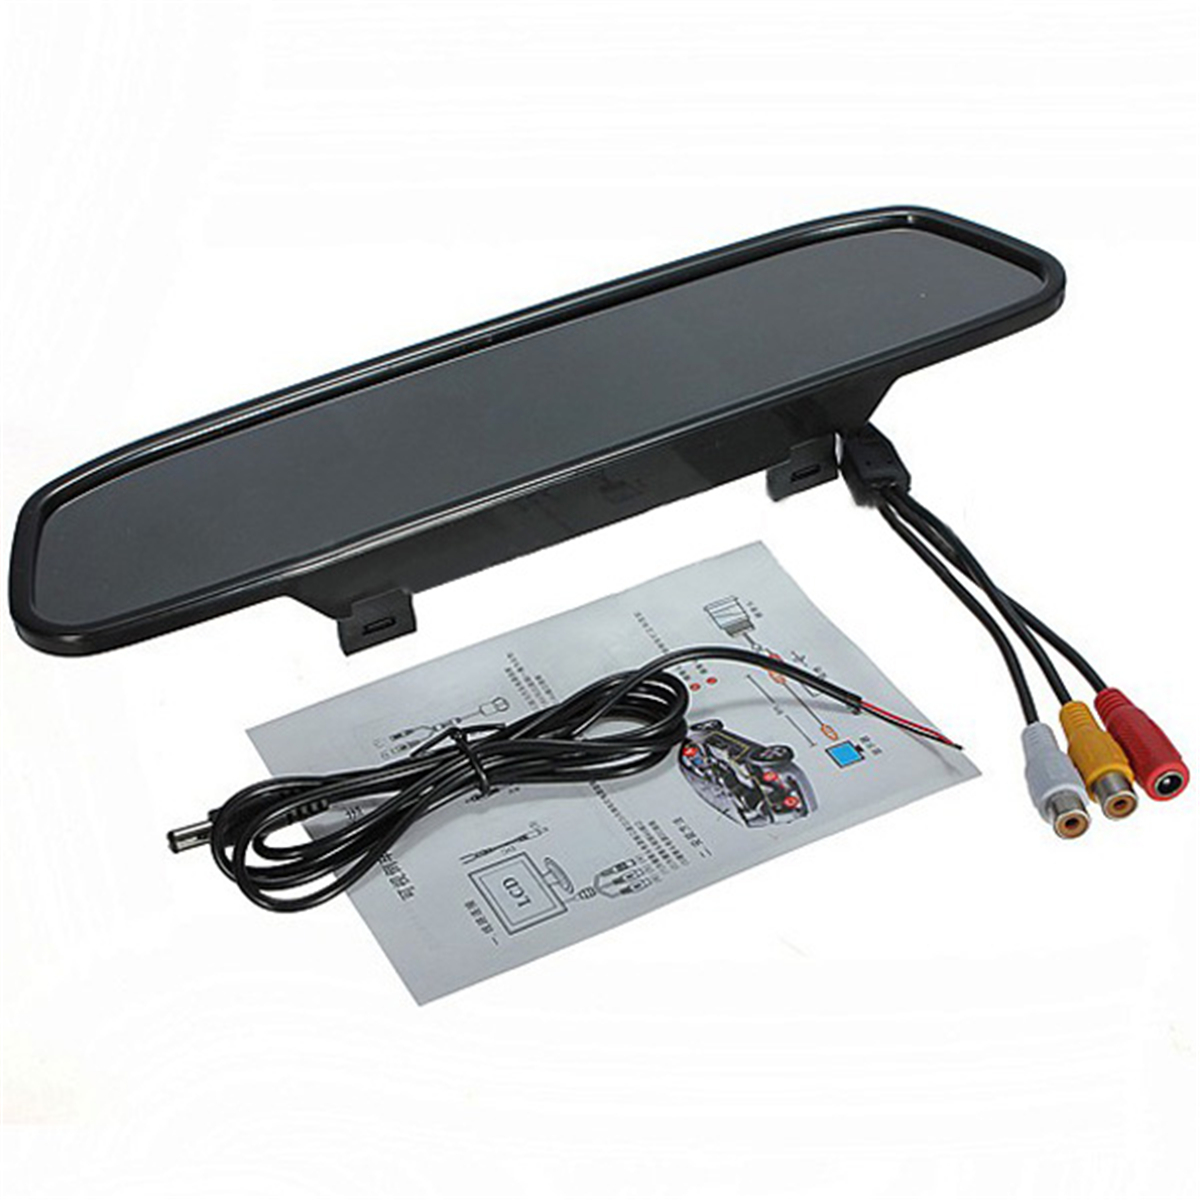 DC 12V 3W 4.3 Inch LCD Car Rear View Camera Monitor Support DVD